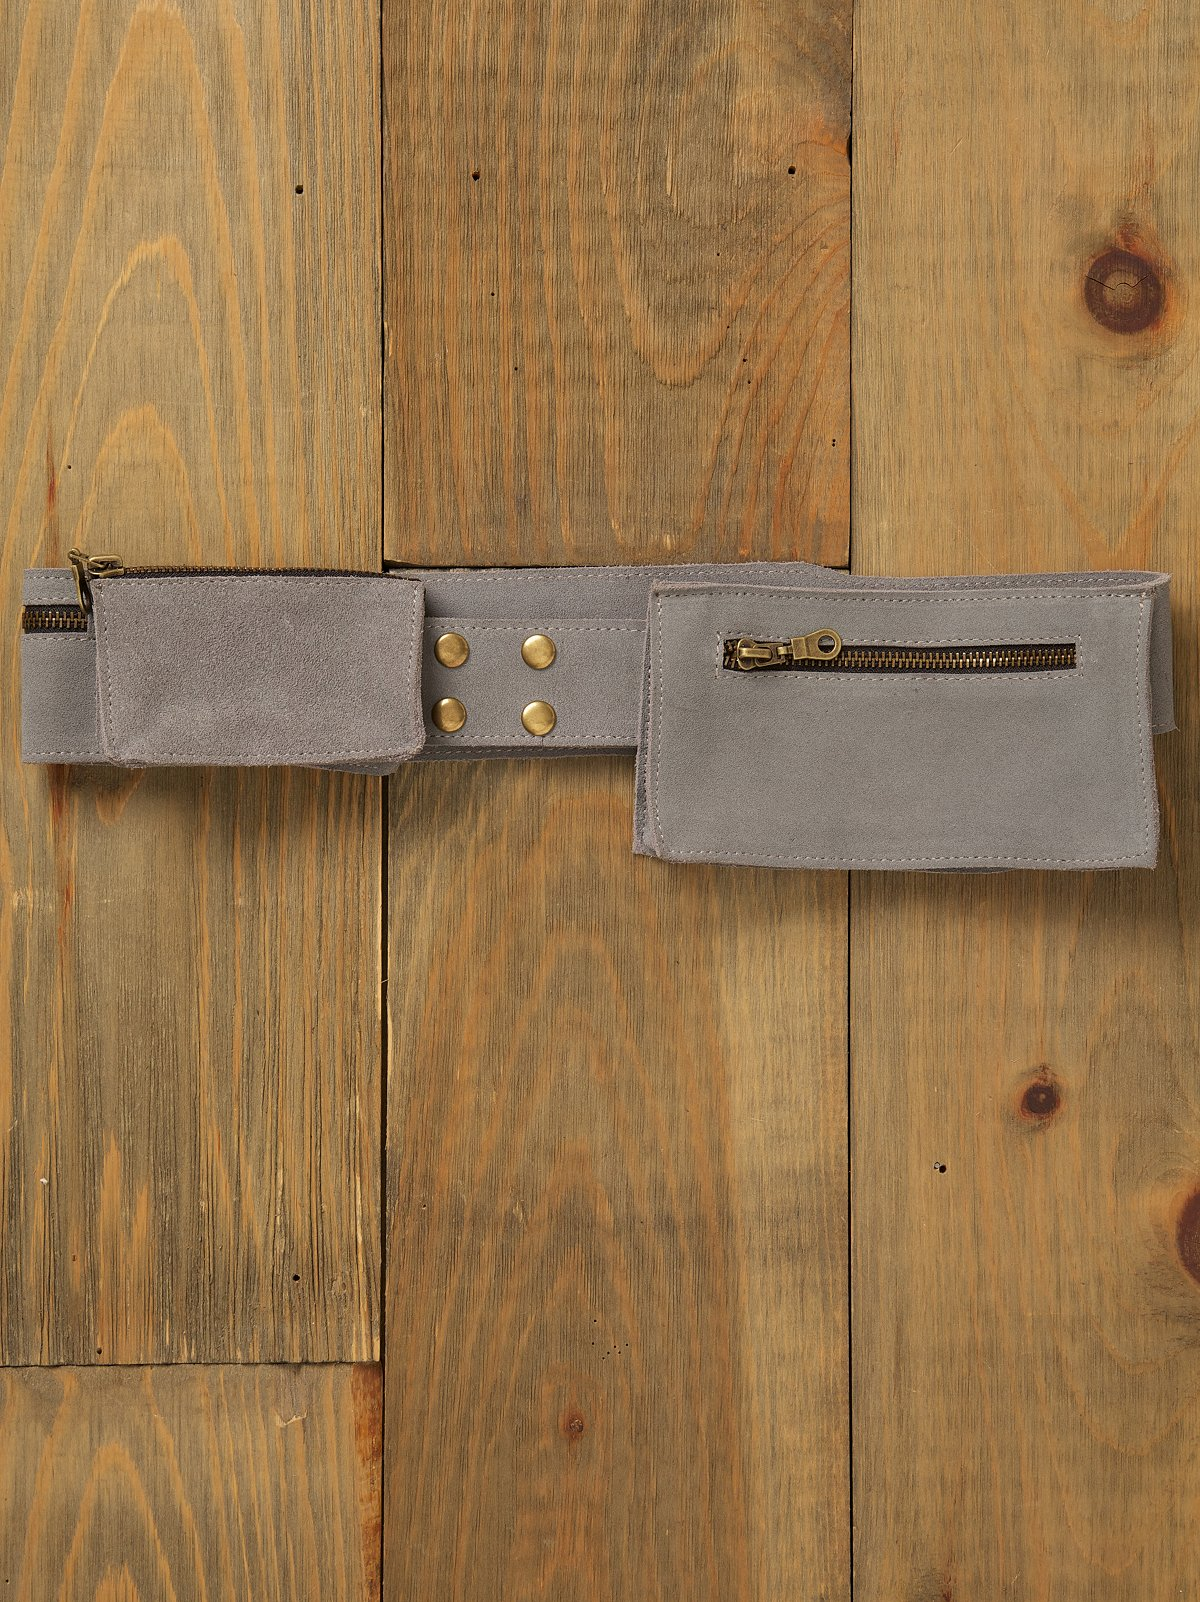 Utility Pocket Belt